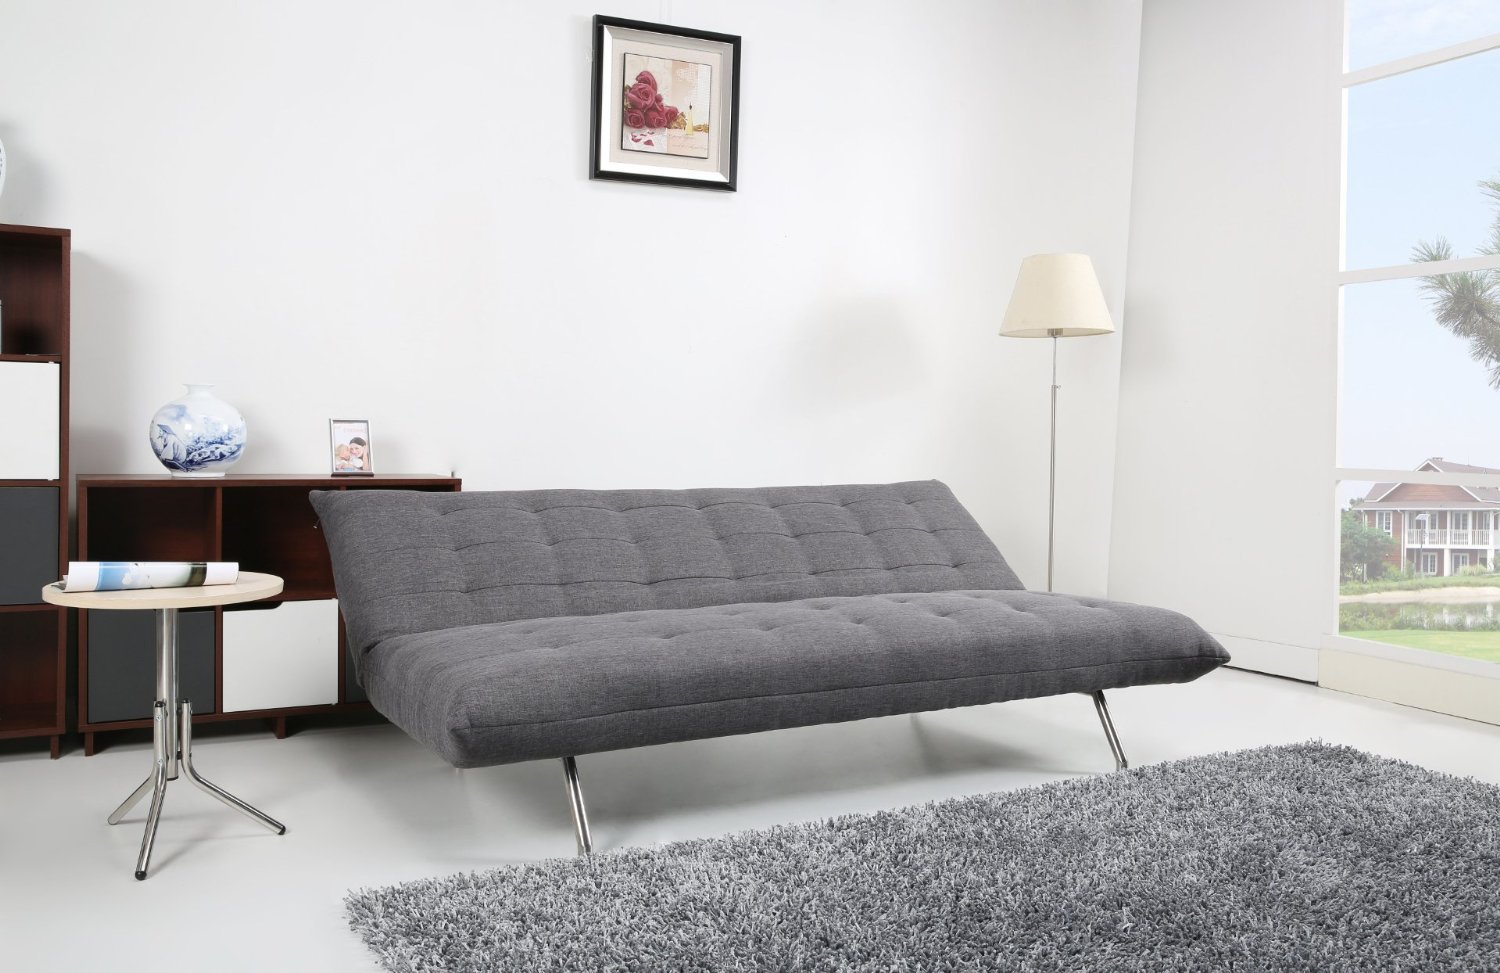 schlafcouch fr 2 personen schlafcouch fr 2 personen with schlafcouch fr 2 personen amazing bis. Black Bedroom Furniture Sets. Home Design Ideas